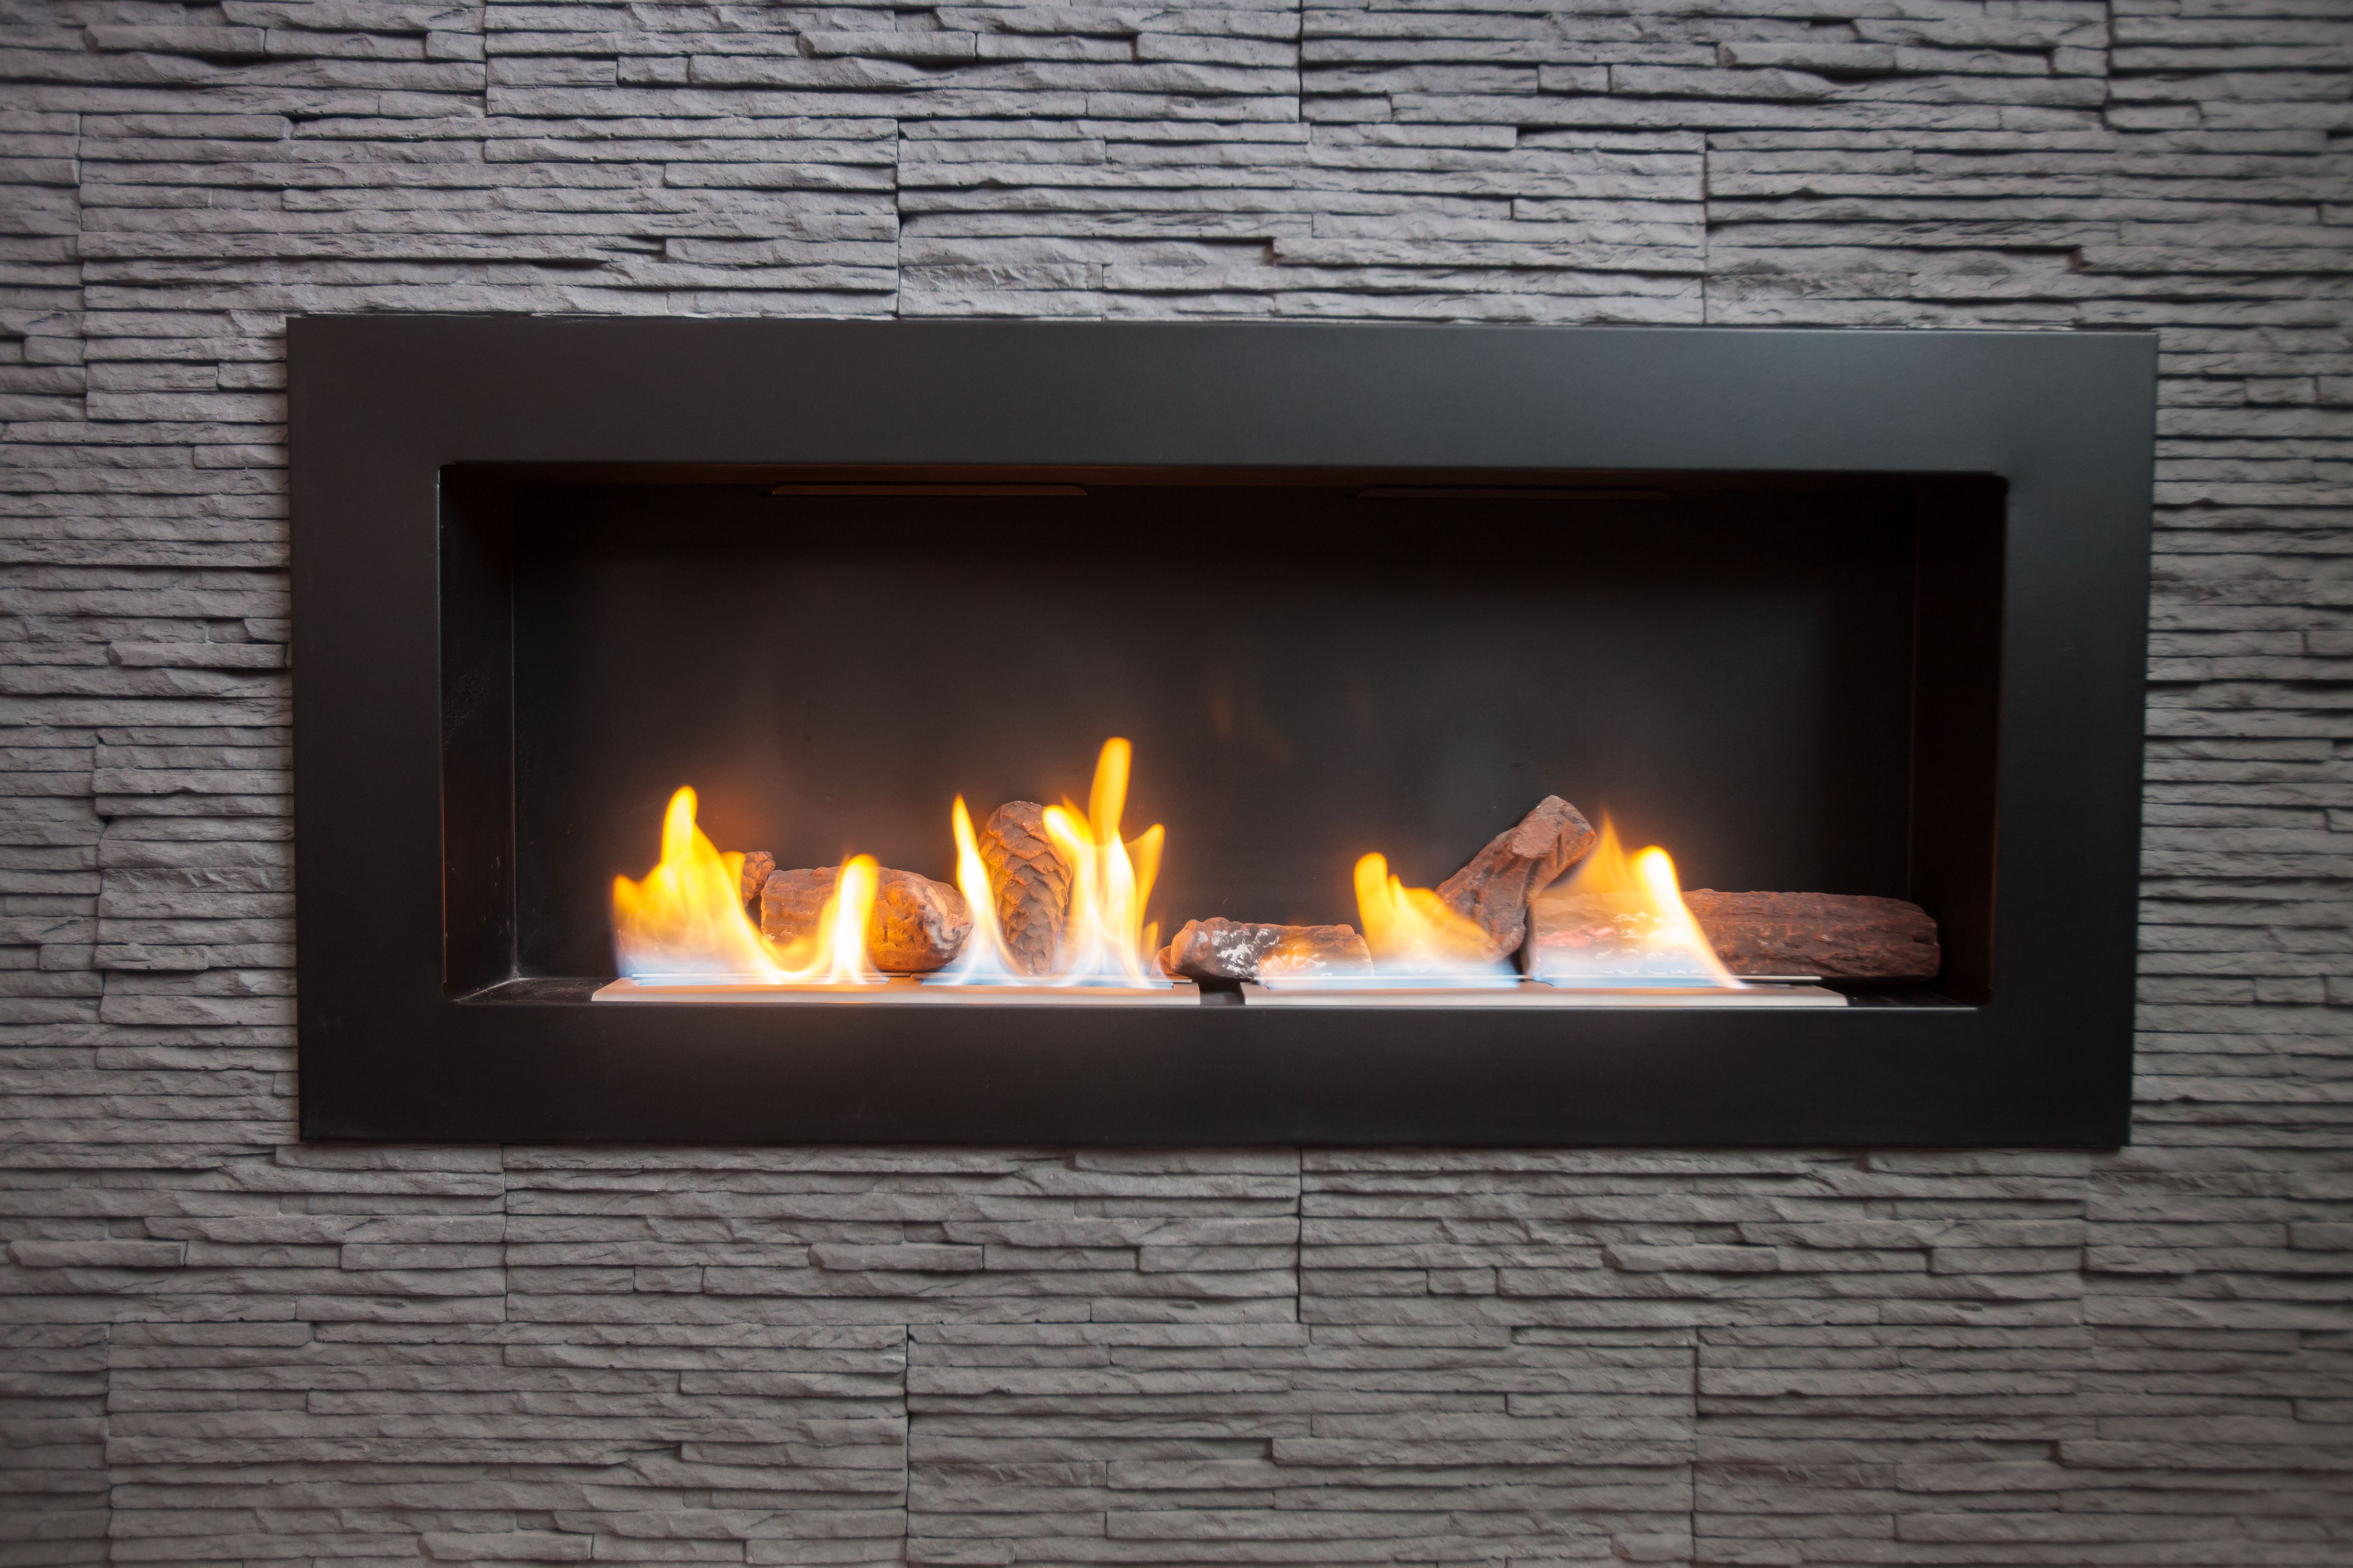 What Kind Of Insulation To Use Around My Heatilator Gas Fireplace Gas Fireplace Fireplace Installing A Fireplace